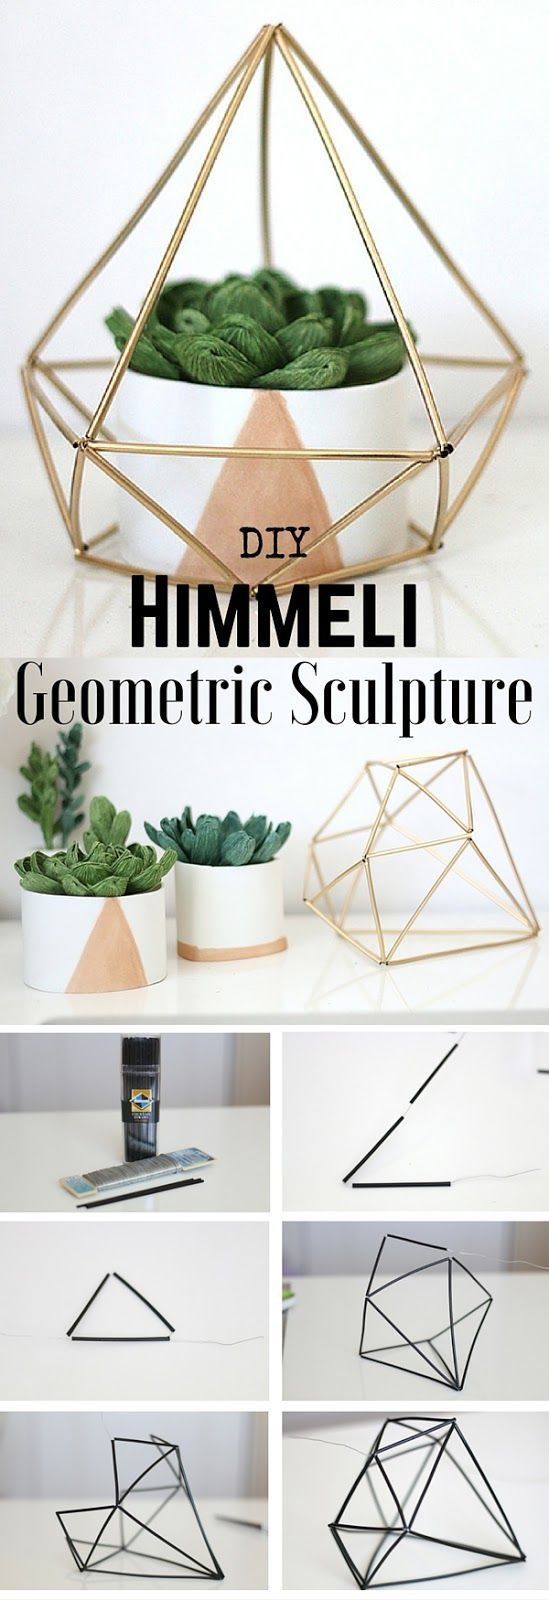 Simple Diy Home Decor Ideas - Make Your Own Geometric Scrapbooking ...